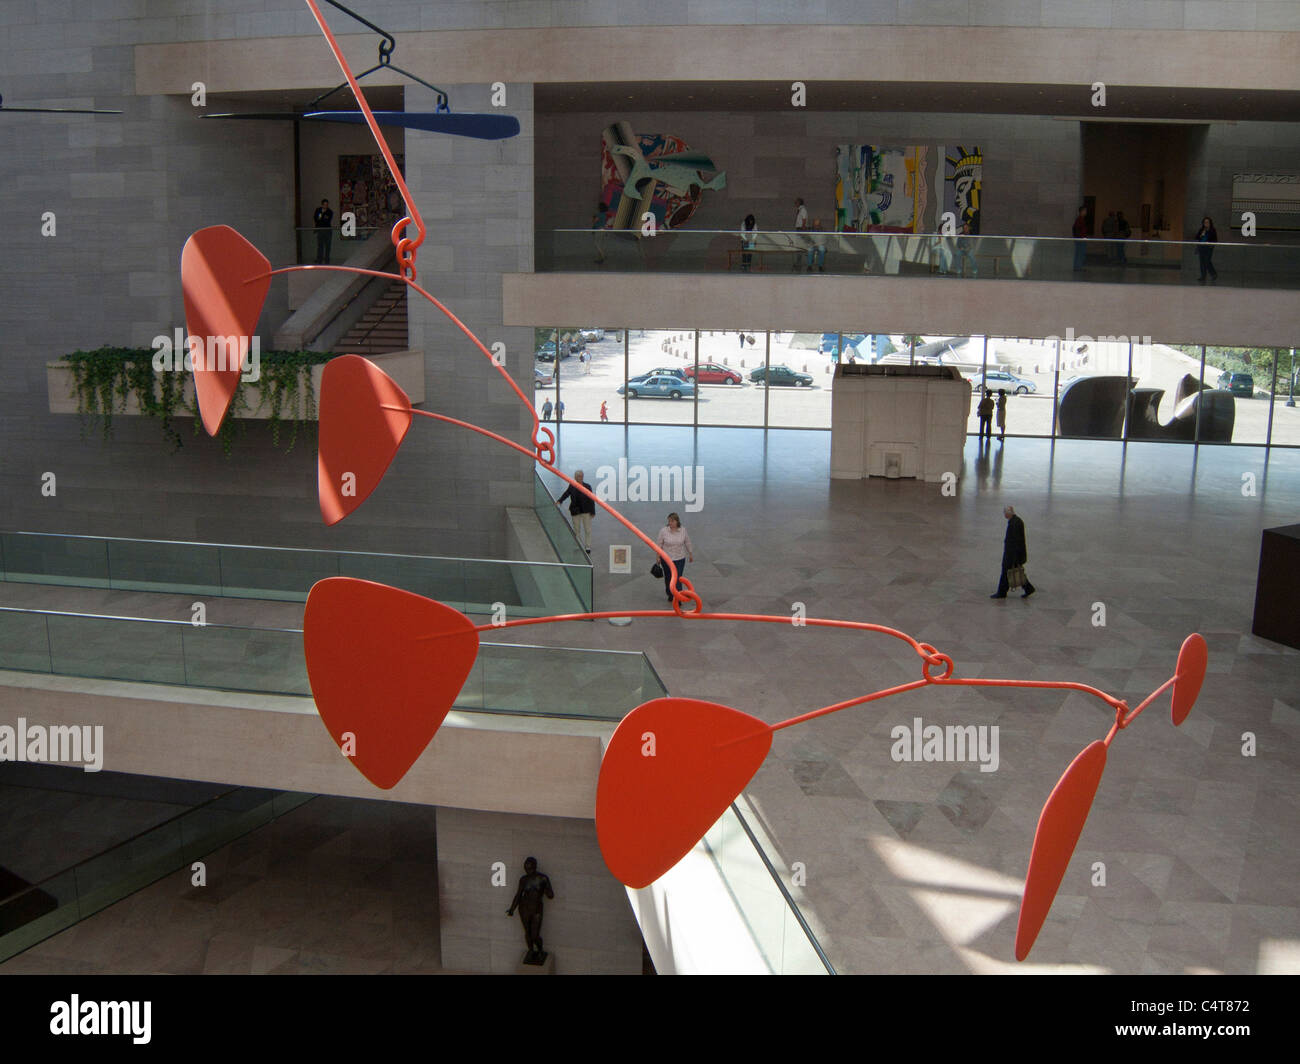 Washington DC, The Mall, Smithsonian National Gallery of Art, interior with Alexander Calder mobile sculpture - Stock Image